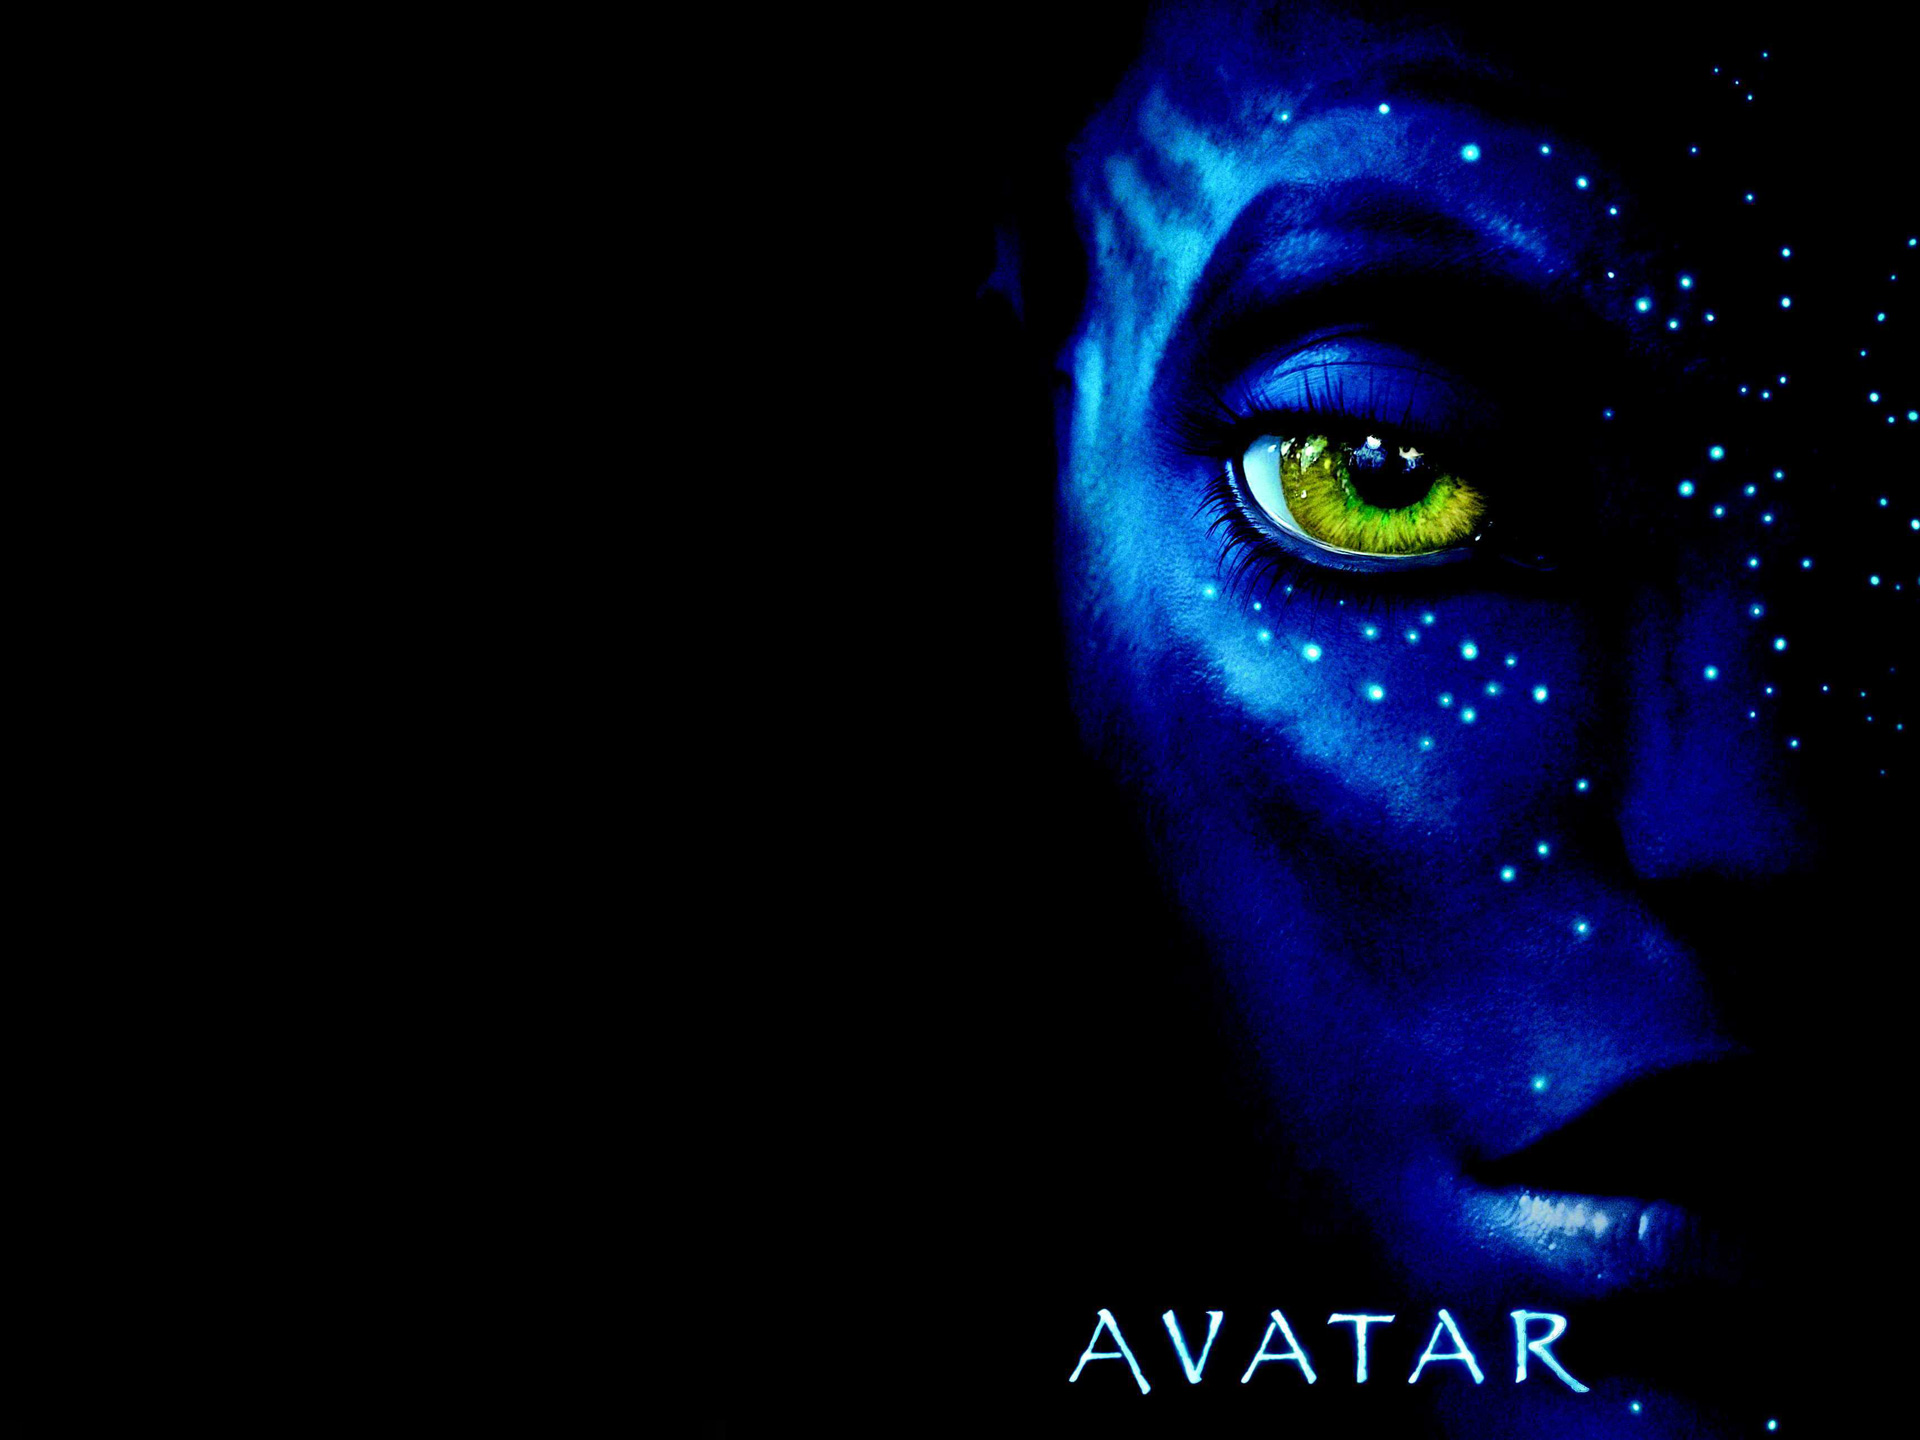 Avatar 4k Wallpapers For Your Desktop Or Mobile Screen Free